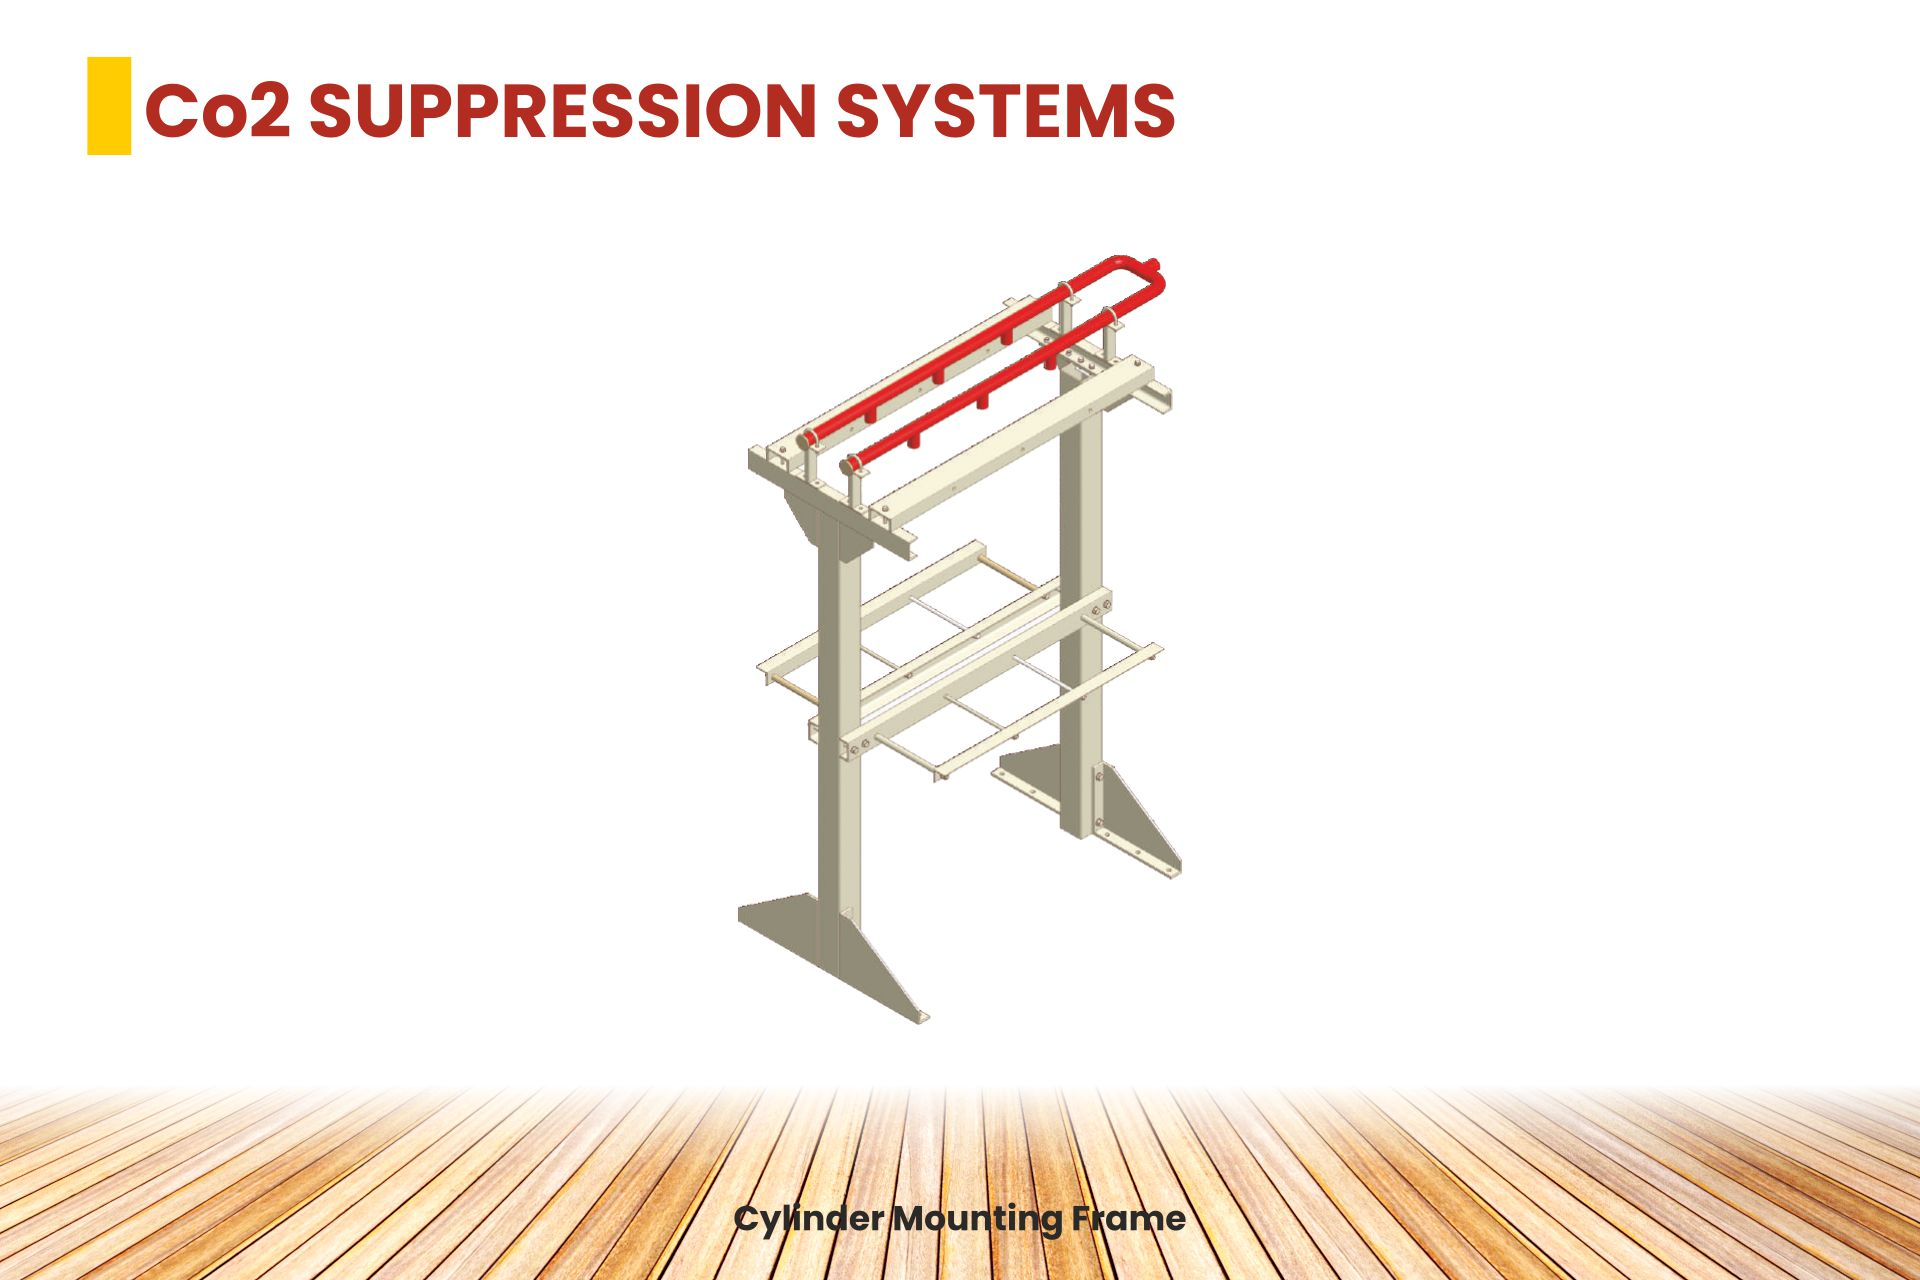 Co2 SUPPRESSION SYSTEM Product  2